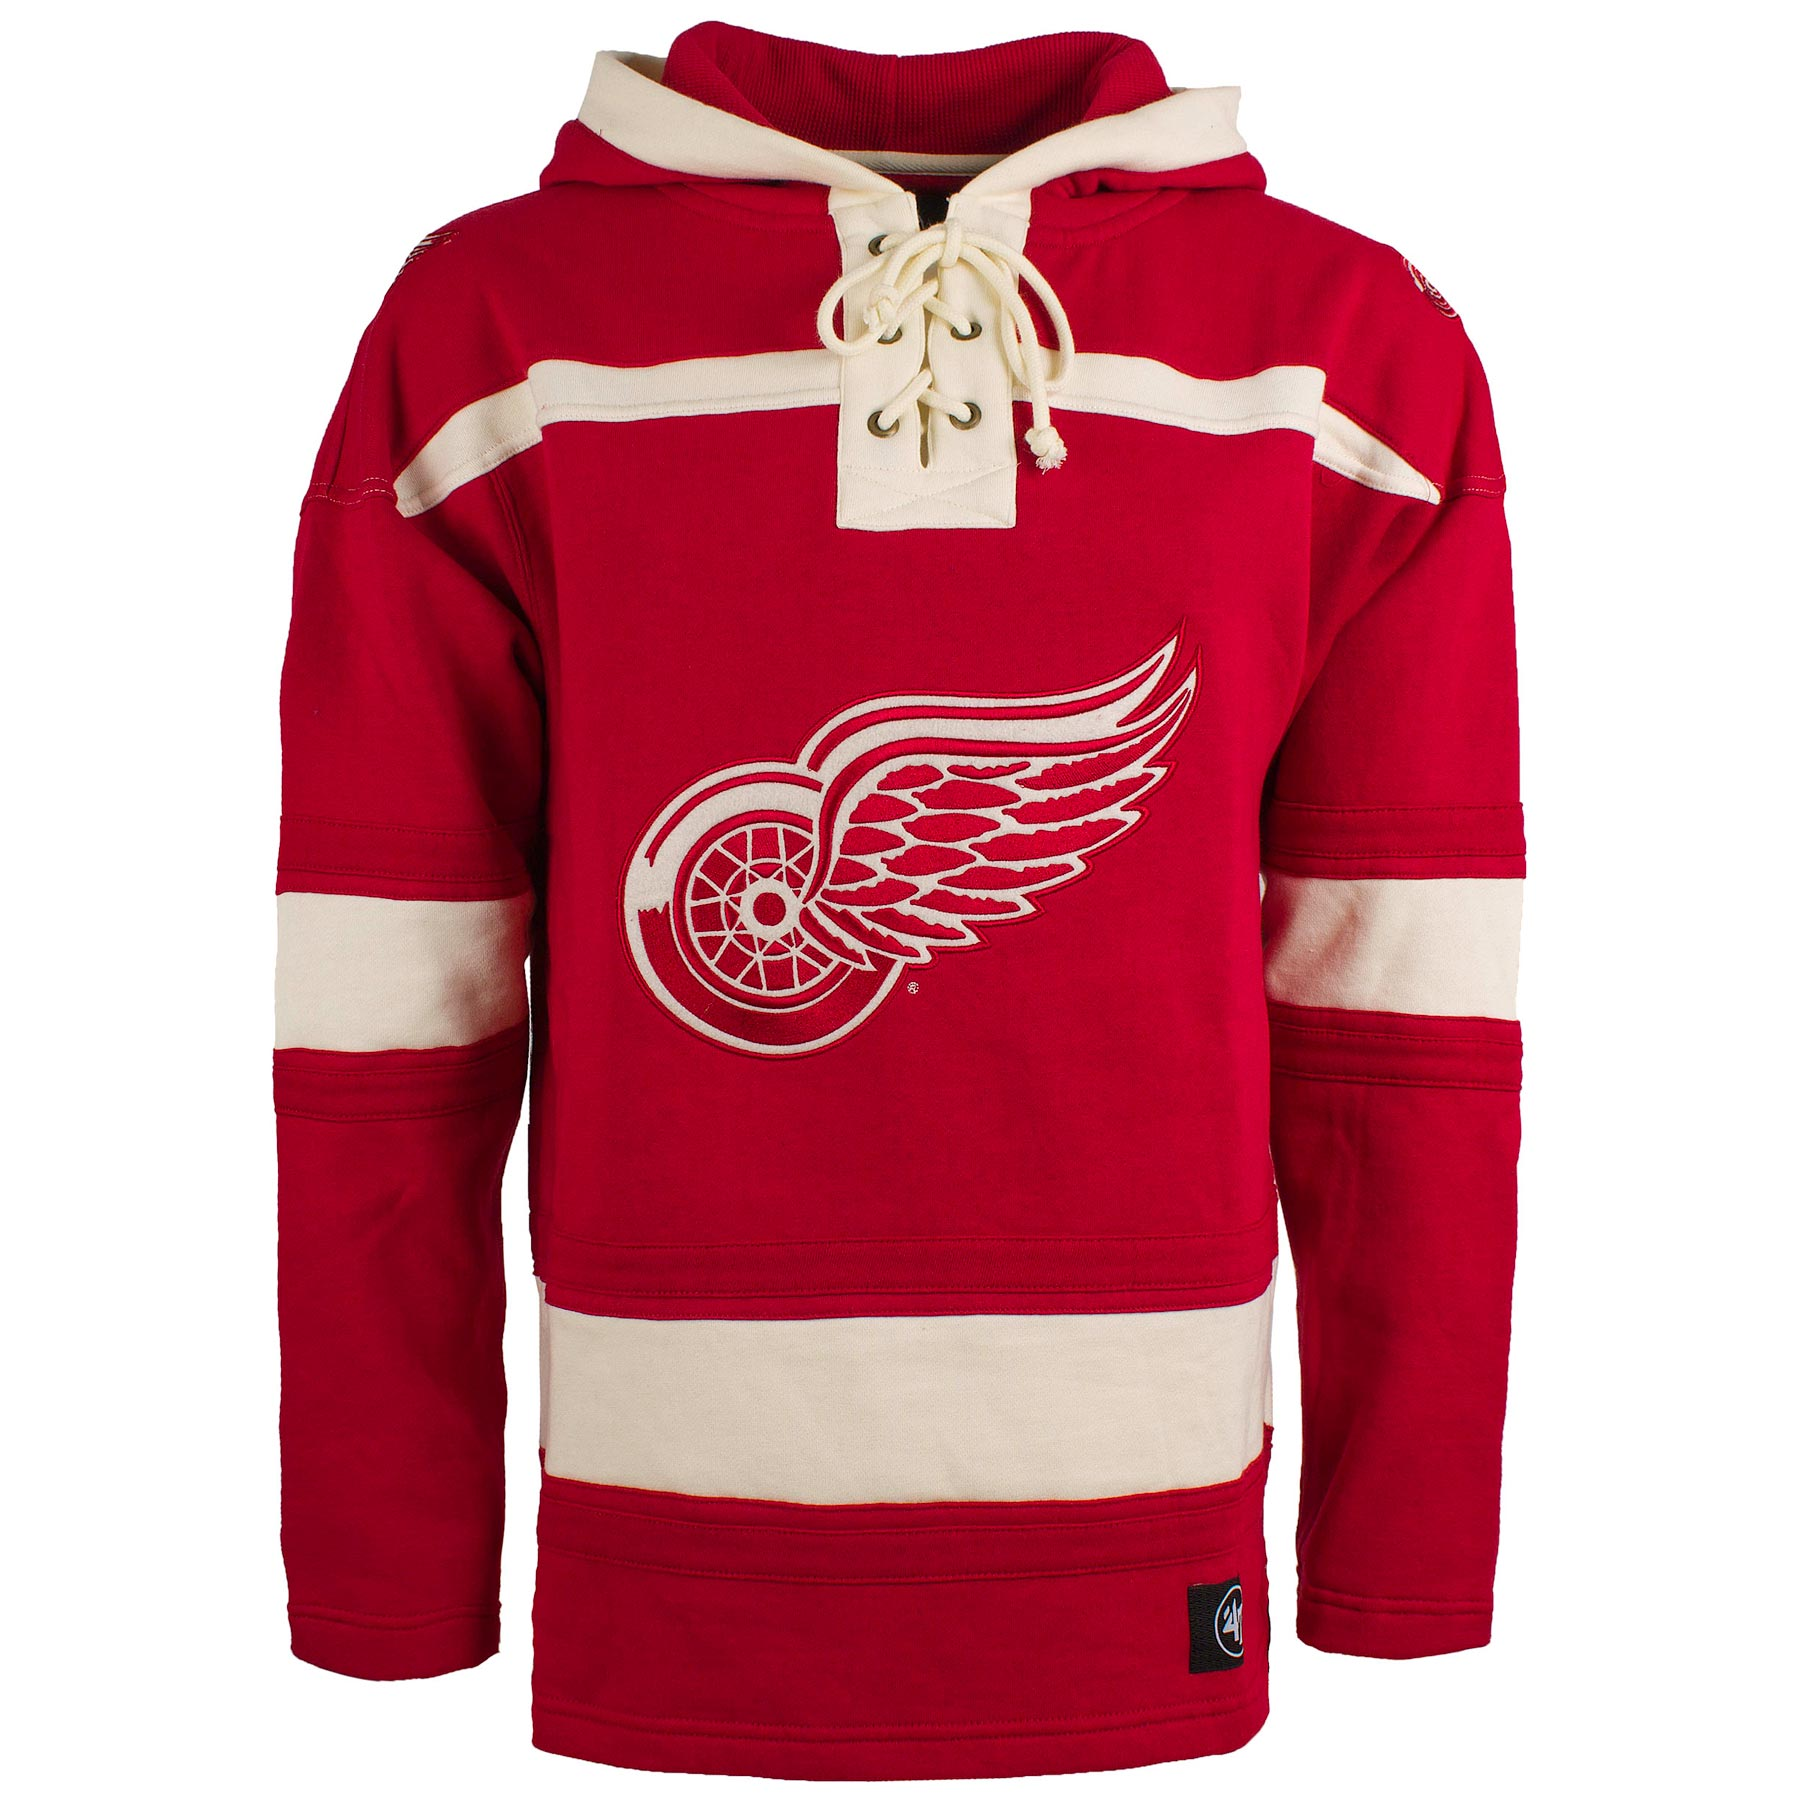 size 40 27b54 b7f37 Detroit Red Wings Retro Thermal Applique Long Sleeve T Shirt ...